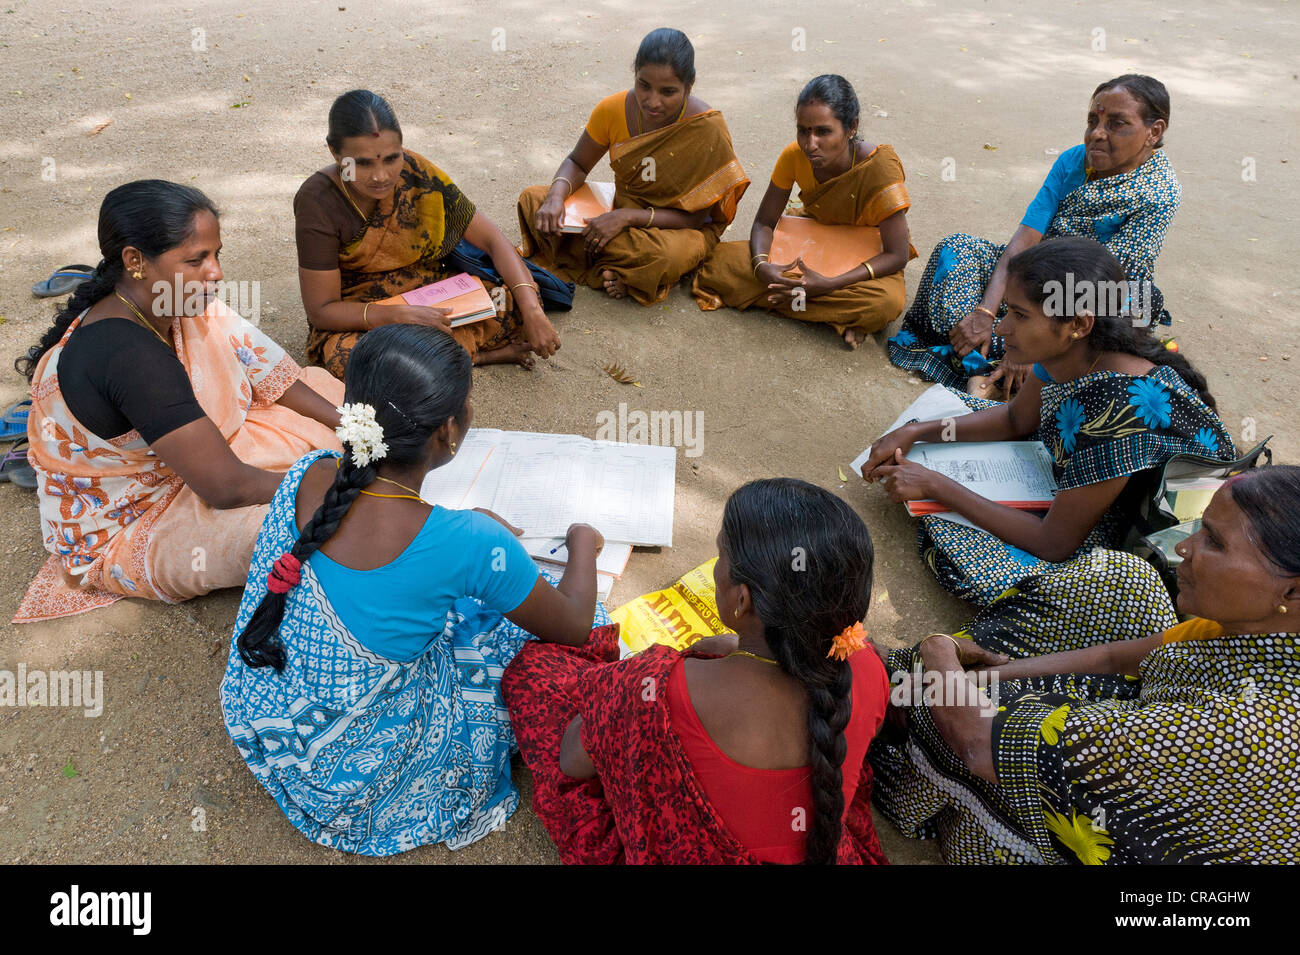 Self Help Group High Resolution Stock Photography And Images Alamy